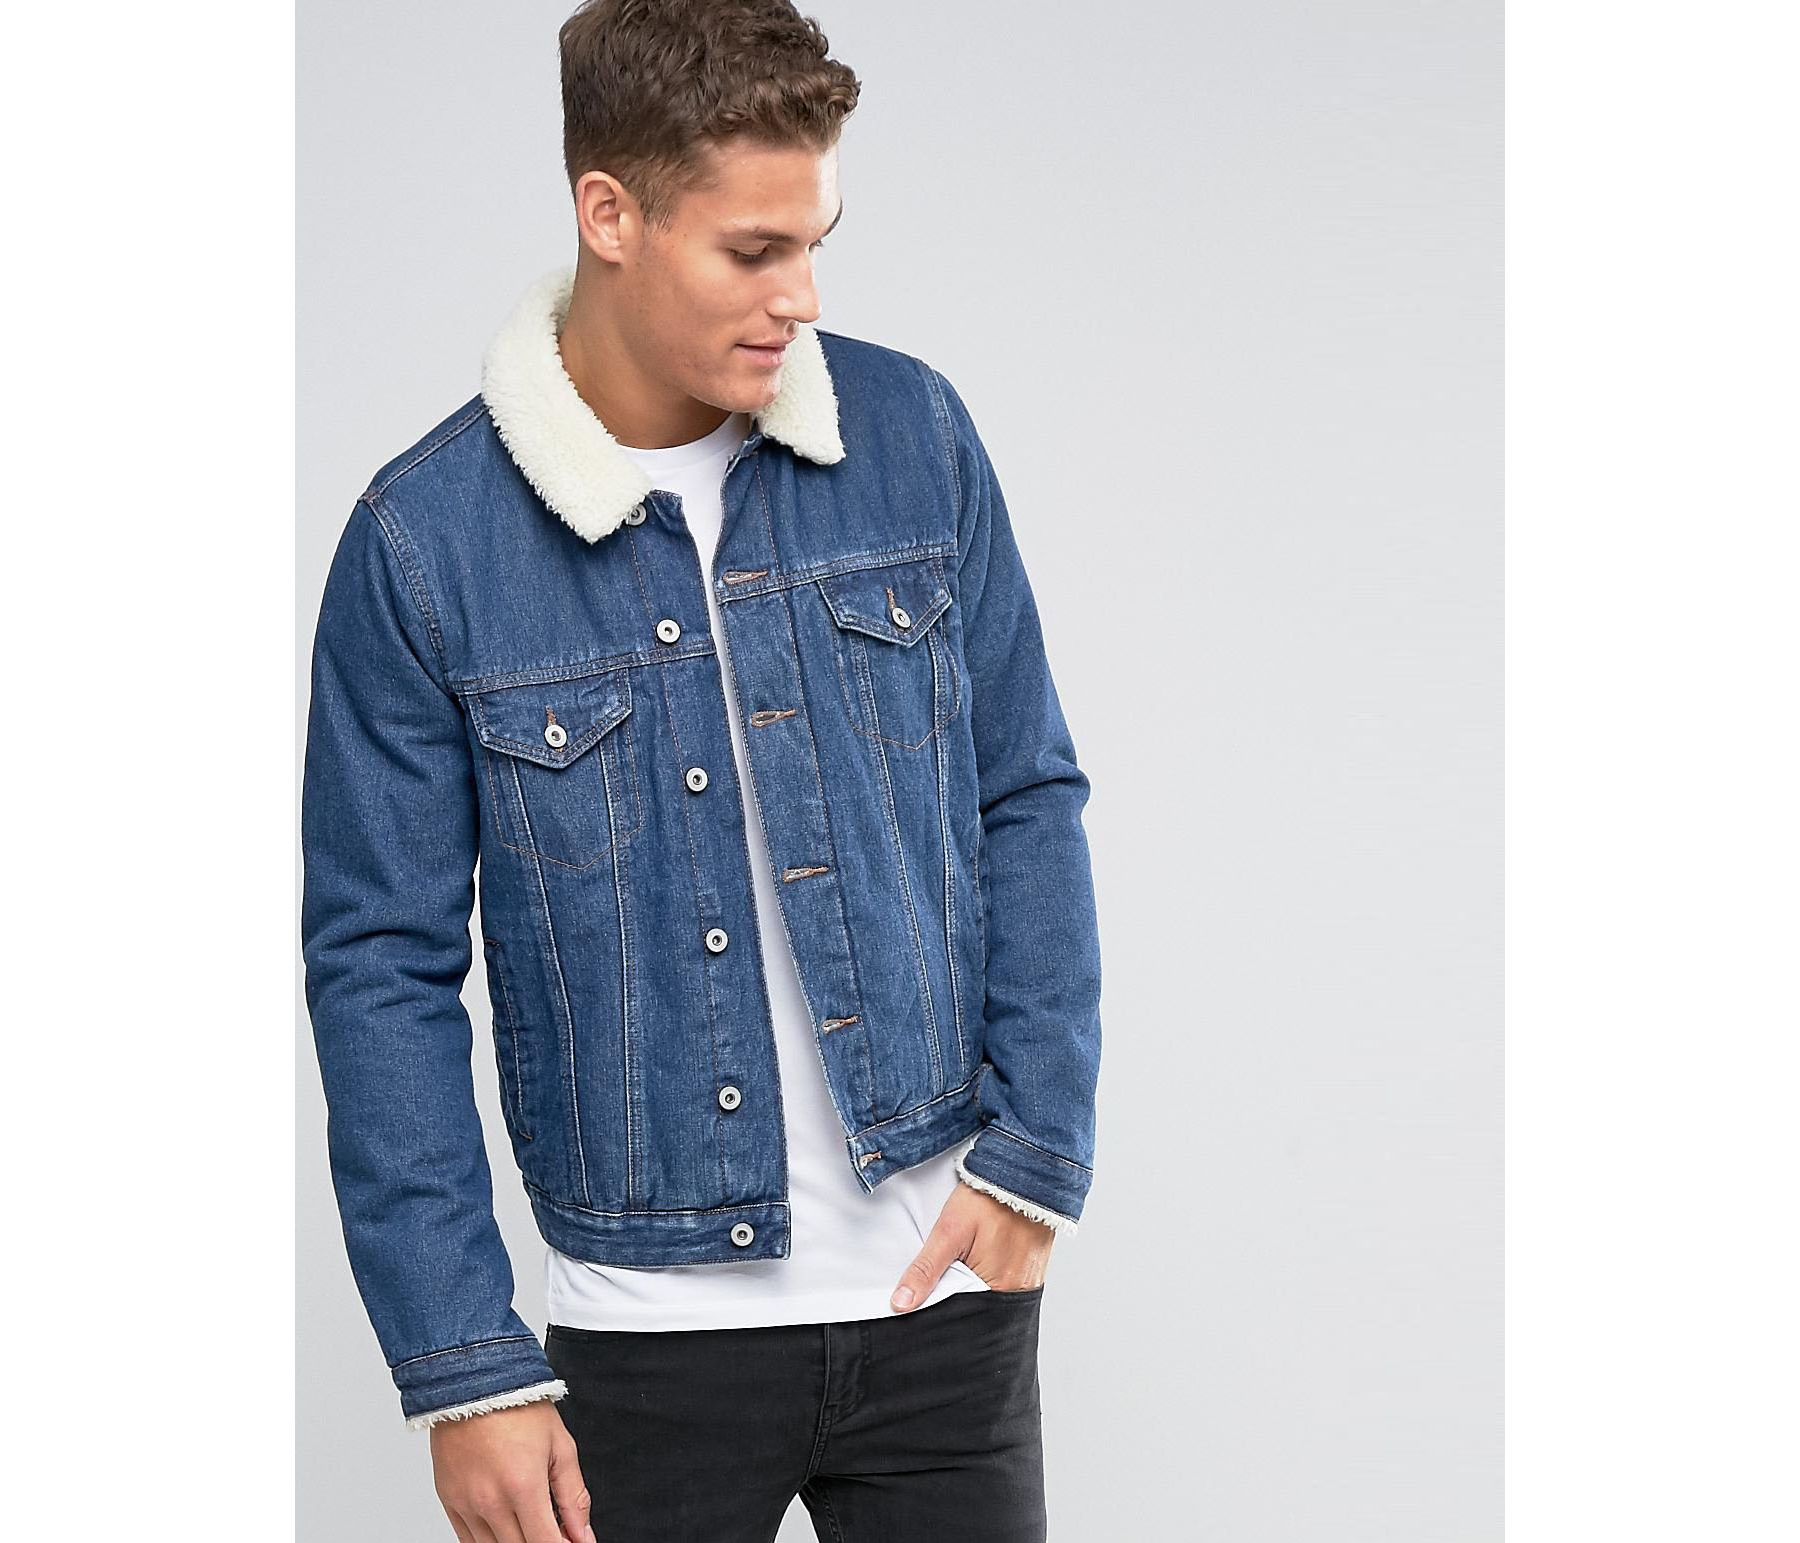 Tengfu Winter Mens Fur Collar Slim Denim Jacket $ 74 4 out of 5 stars 5. AvaCostume. Men's Winter Fleece Lined Fur Collar Denim Jacket Coats. from $ 43 99 Prime. out of 5 stars Lavnis. Men's Casual Denim Jacket Winter Slim Fit Button Down Jeans Coat. from $ 42 99 Prime. 5 out of 5 stars 1. Sun Lorence.